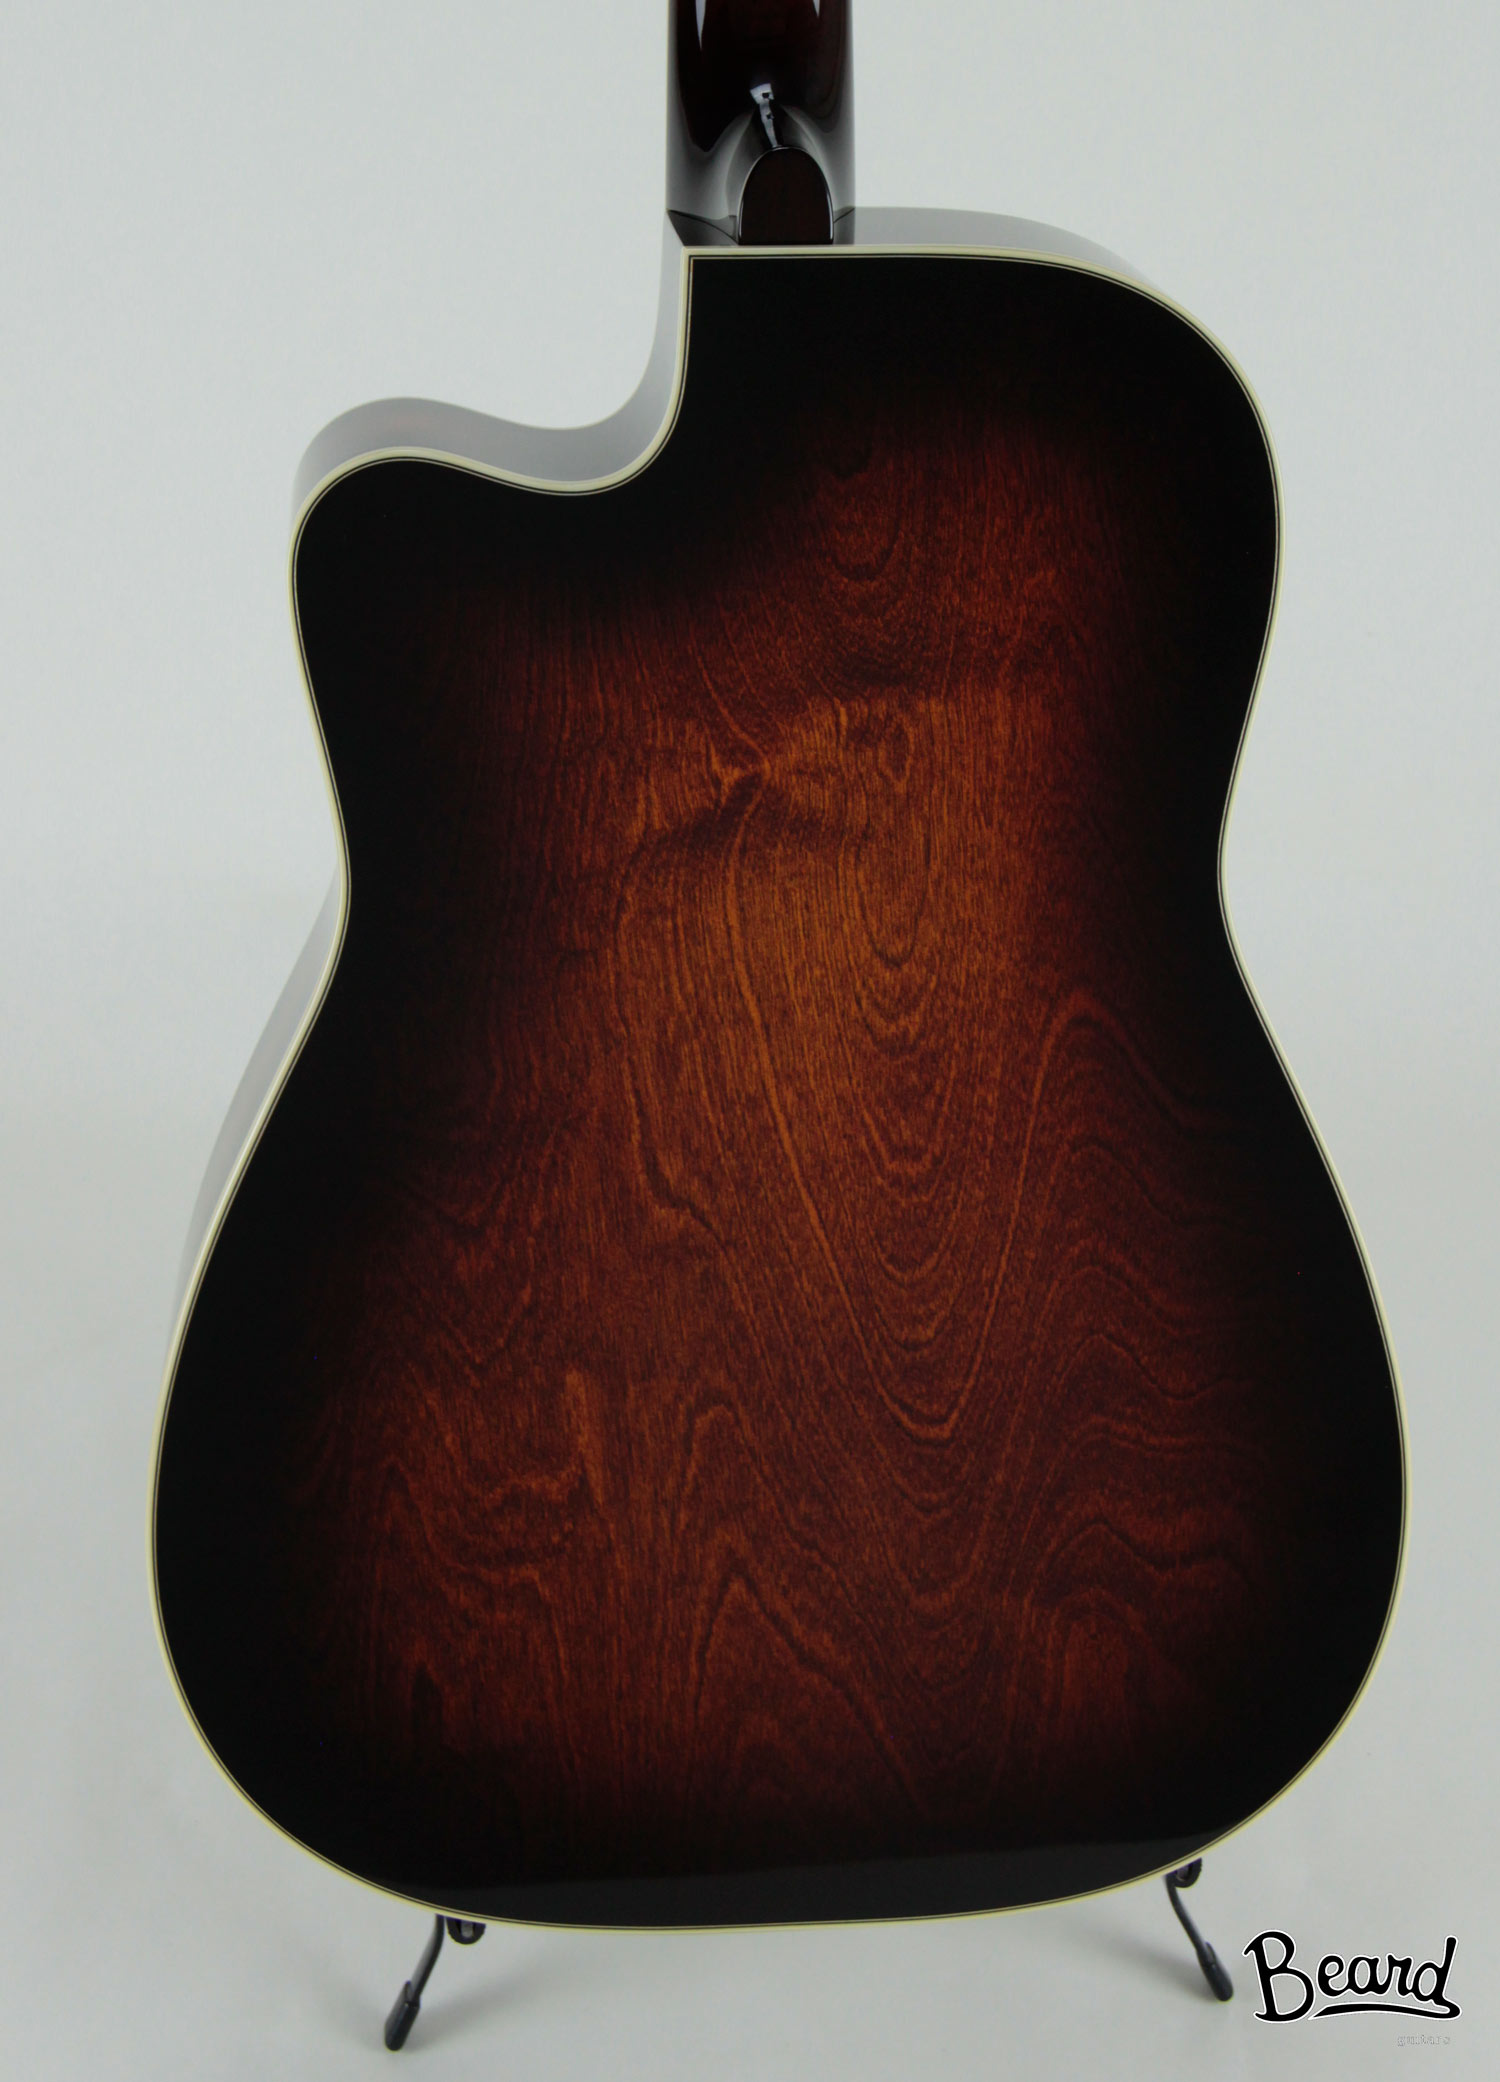 E-Model-Custom-CTWY-Spruce-Birch-Burst-Back.jpg